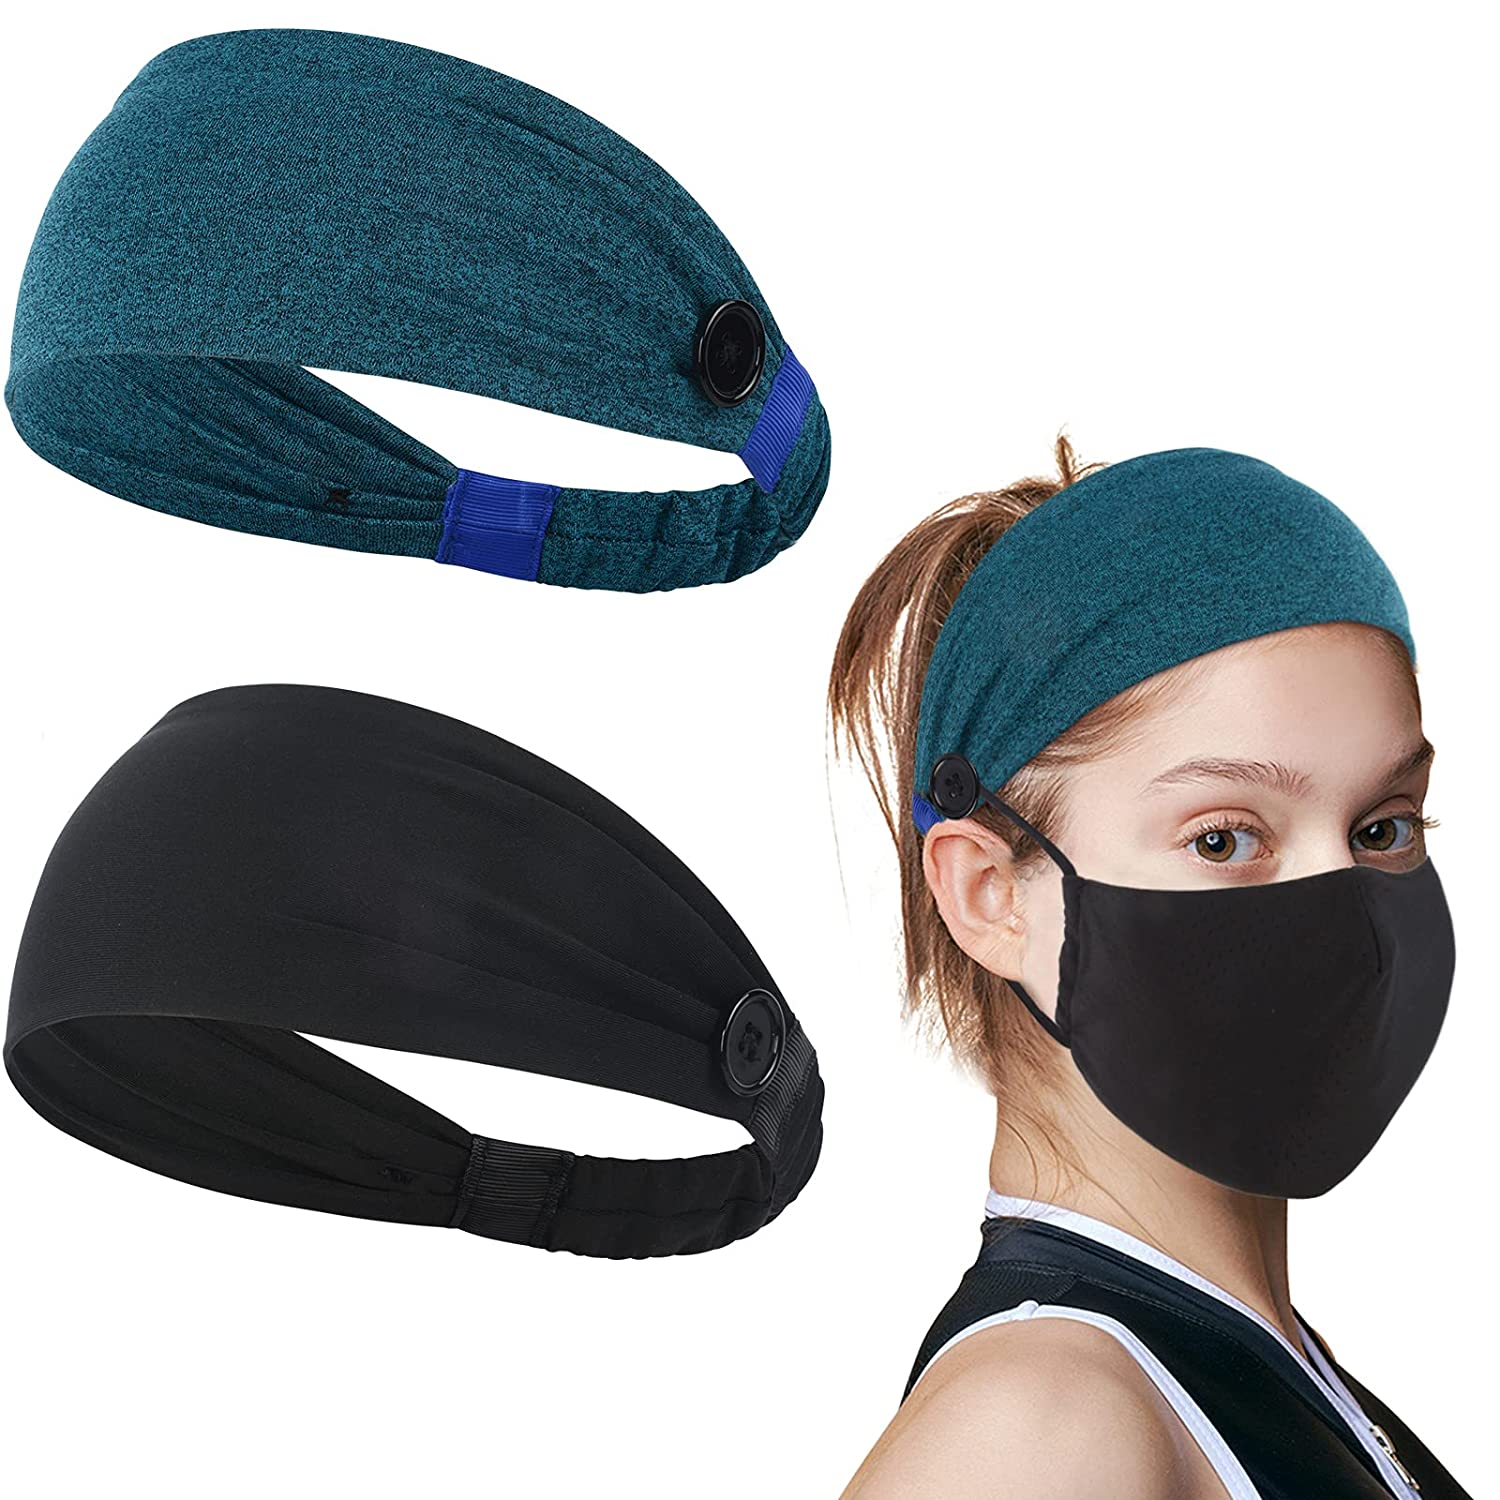 KinHwa Headband with Buttons for M-a Ear Face Max 69% OFF Protection Regular dealer M-a-s-k